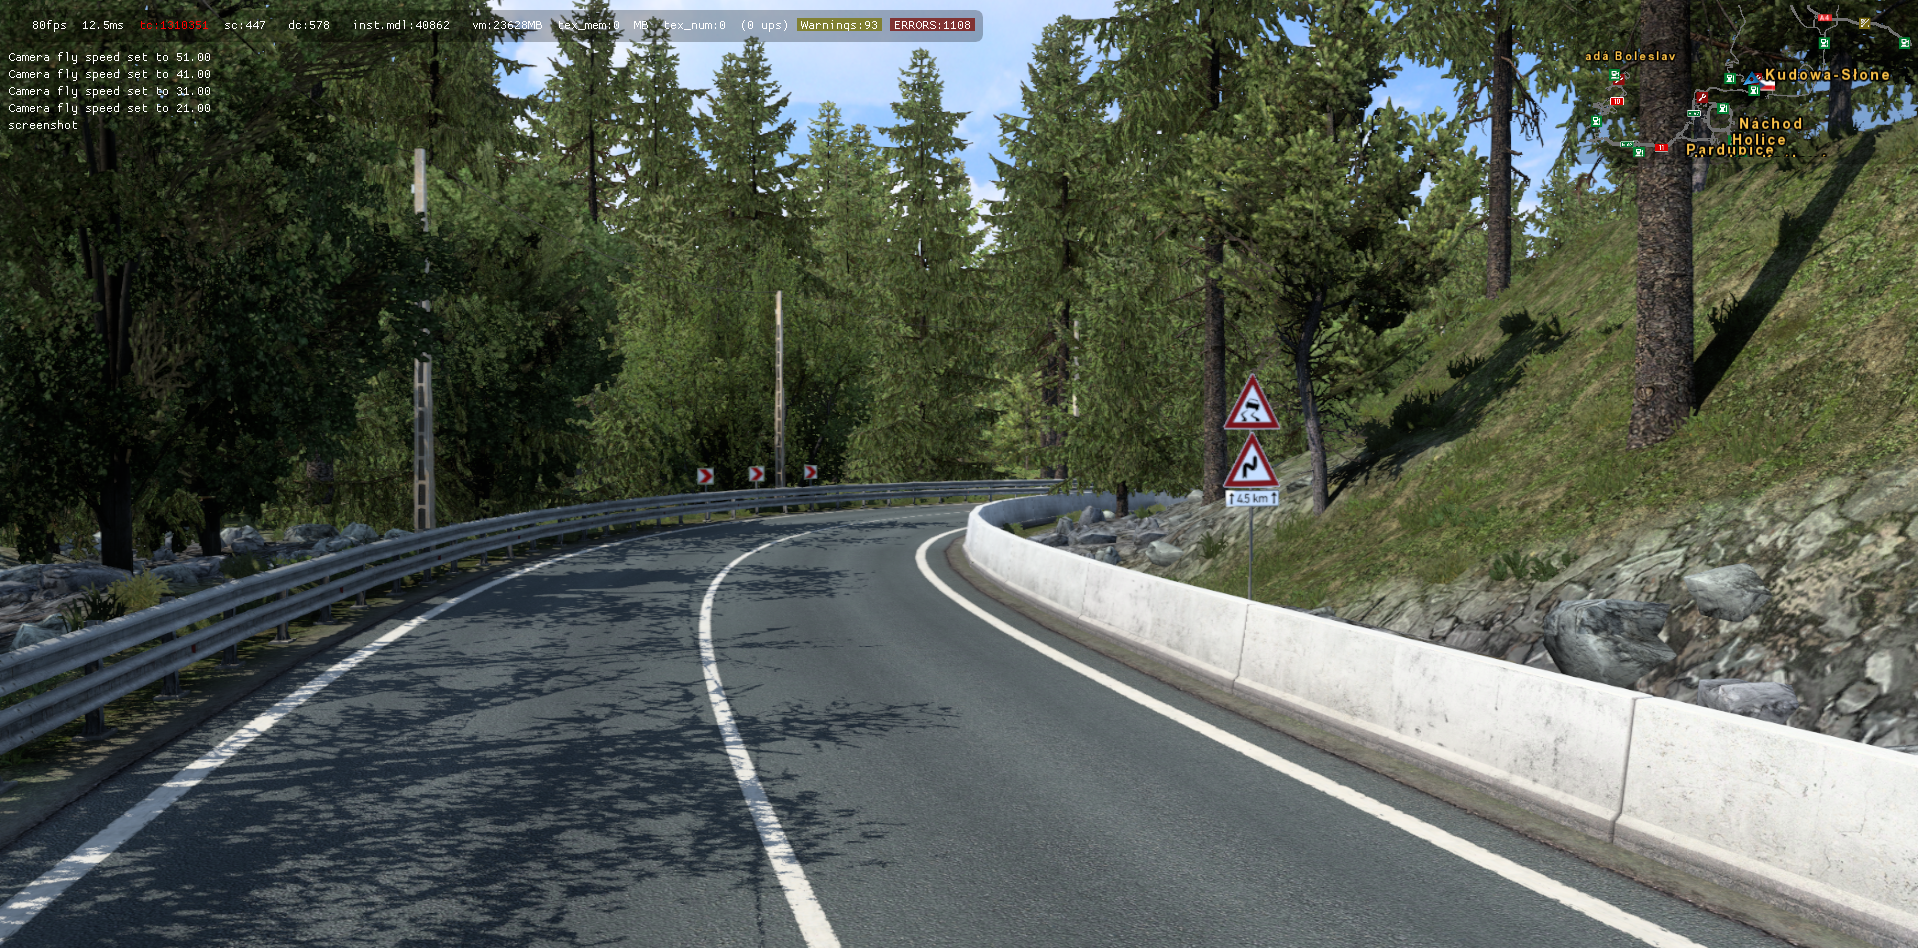 ets2_20210921_201740_00.png